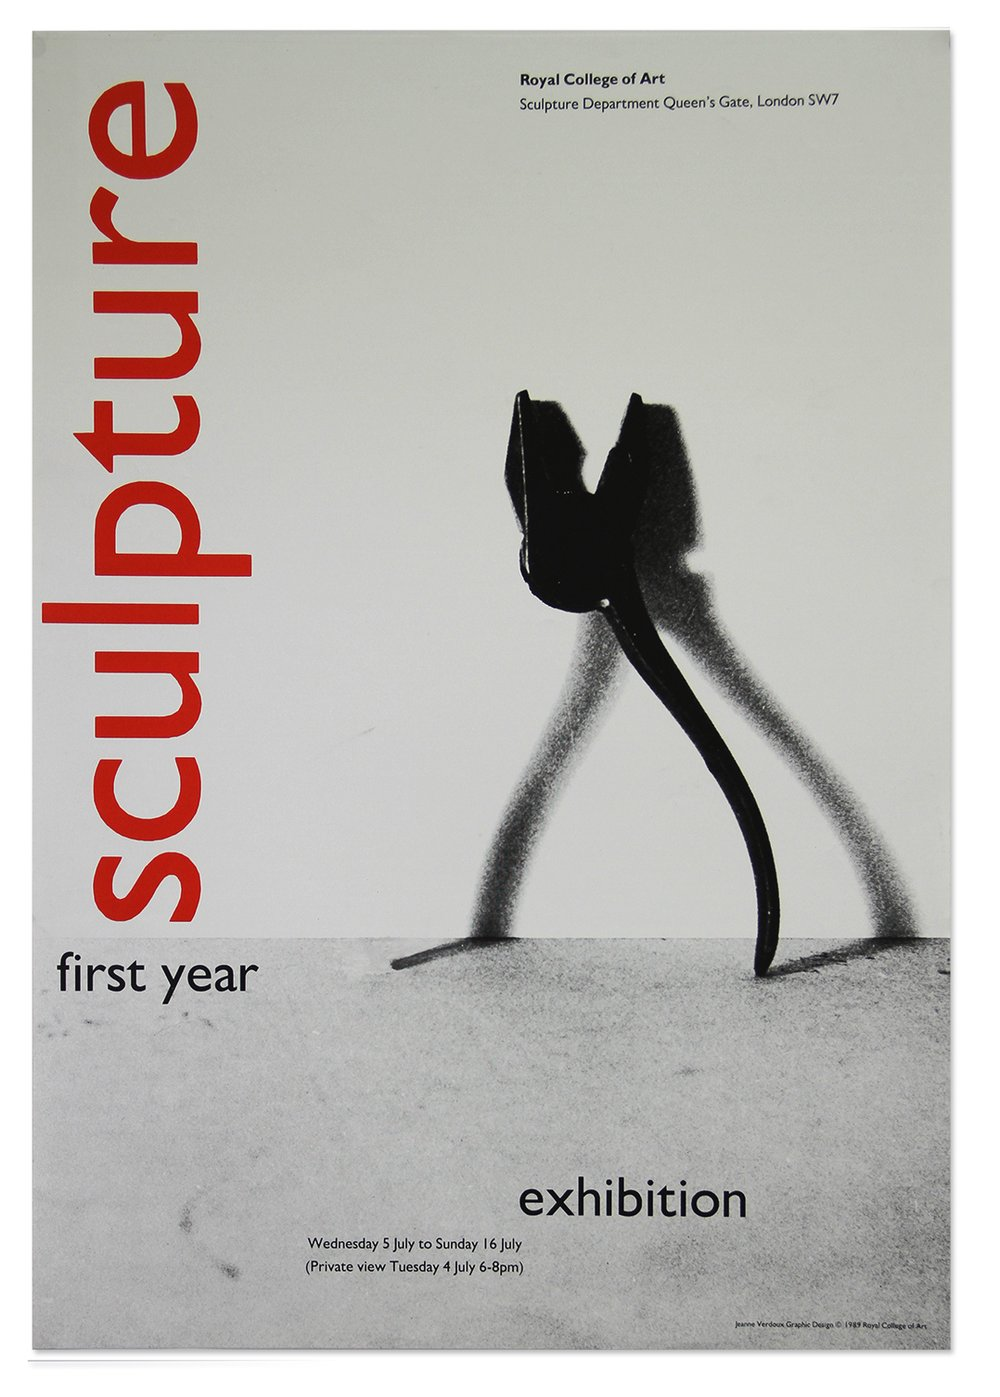 First-year Sculpture Exhibition Poster